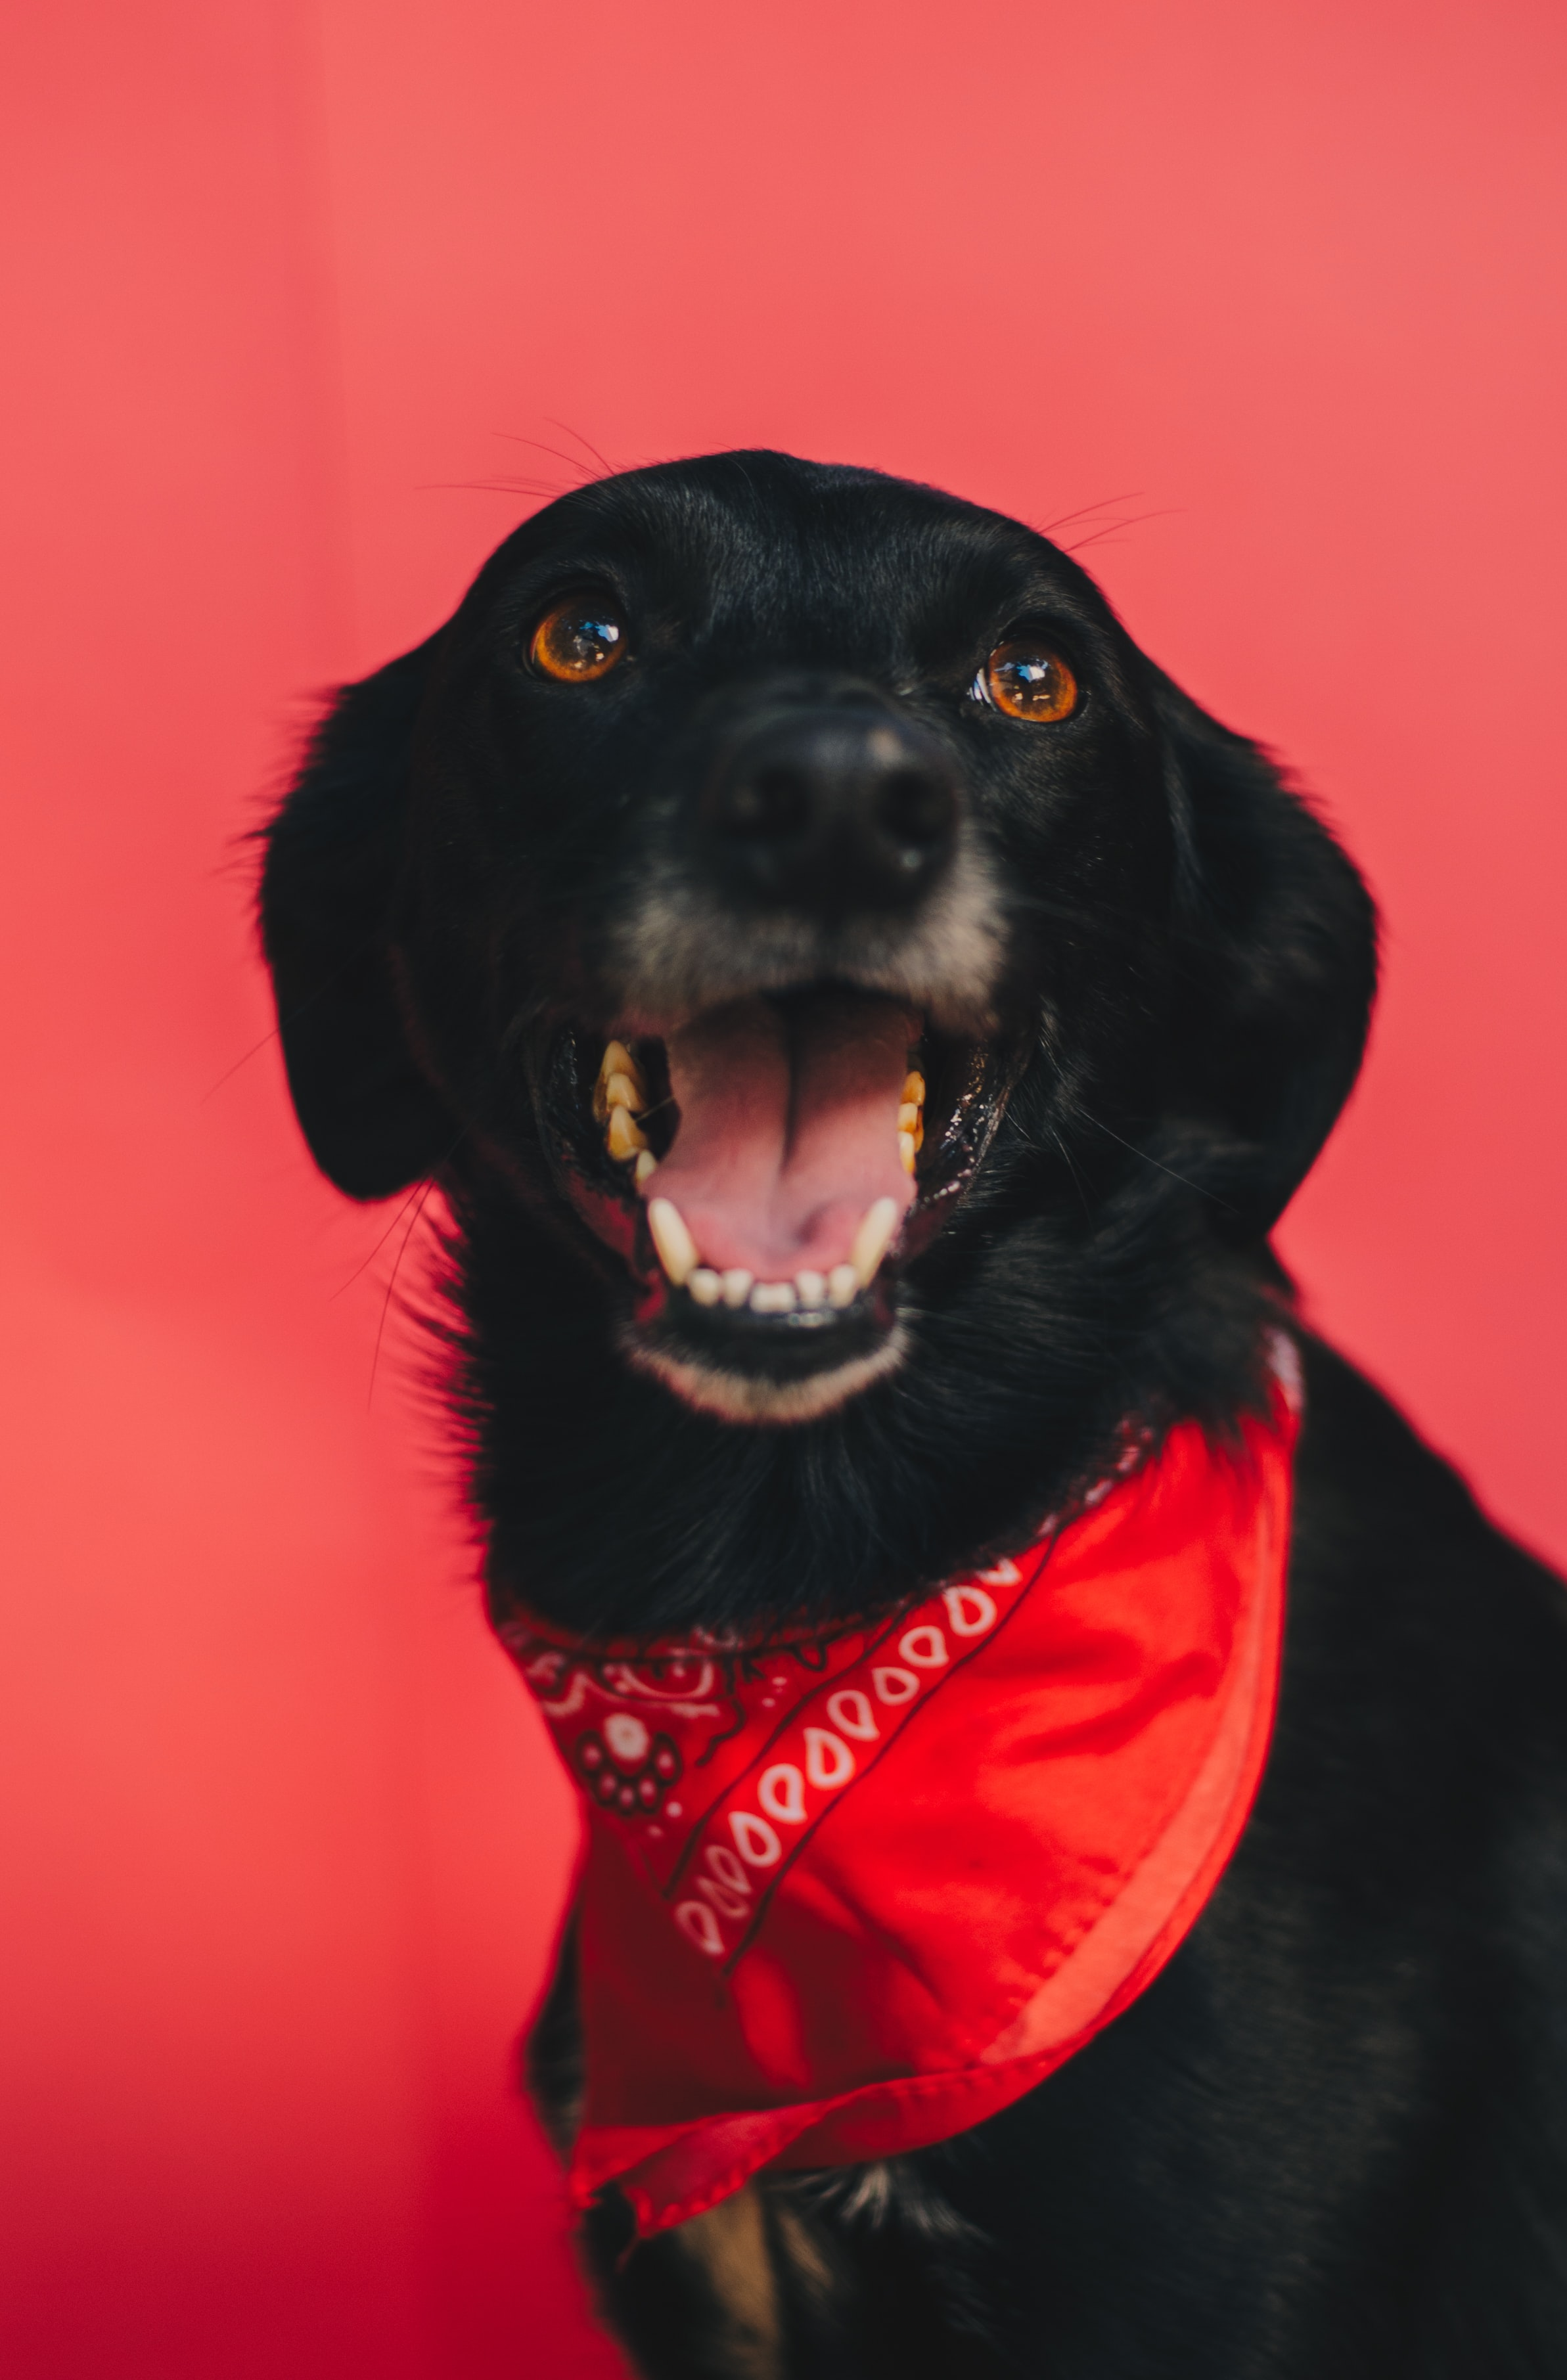 black dog with red bandanna